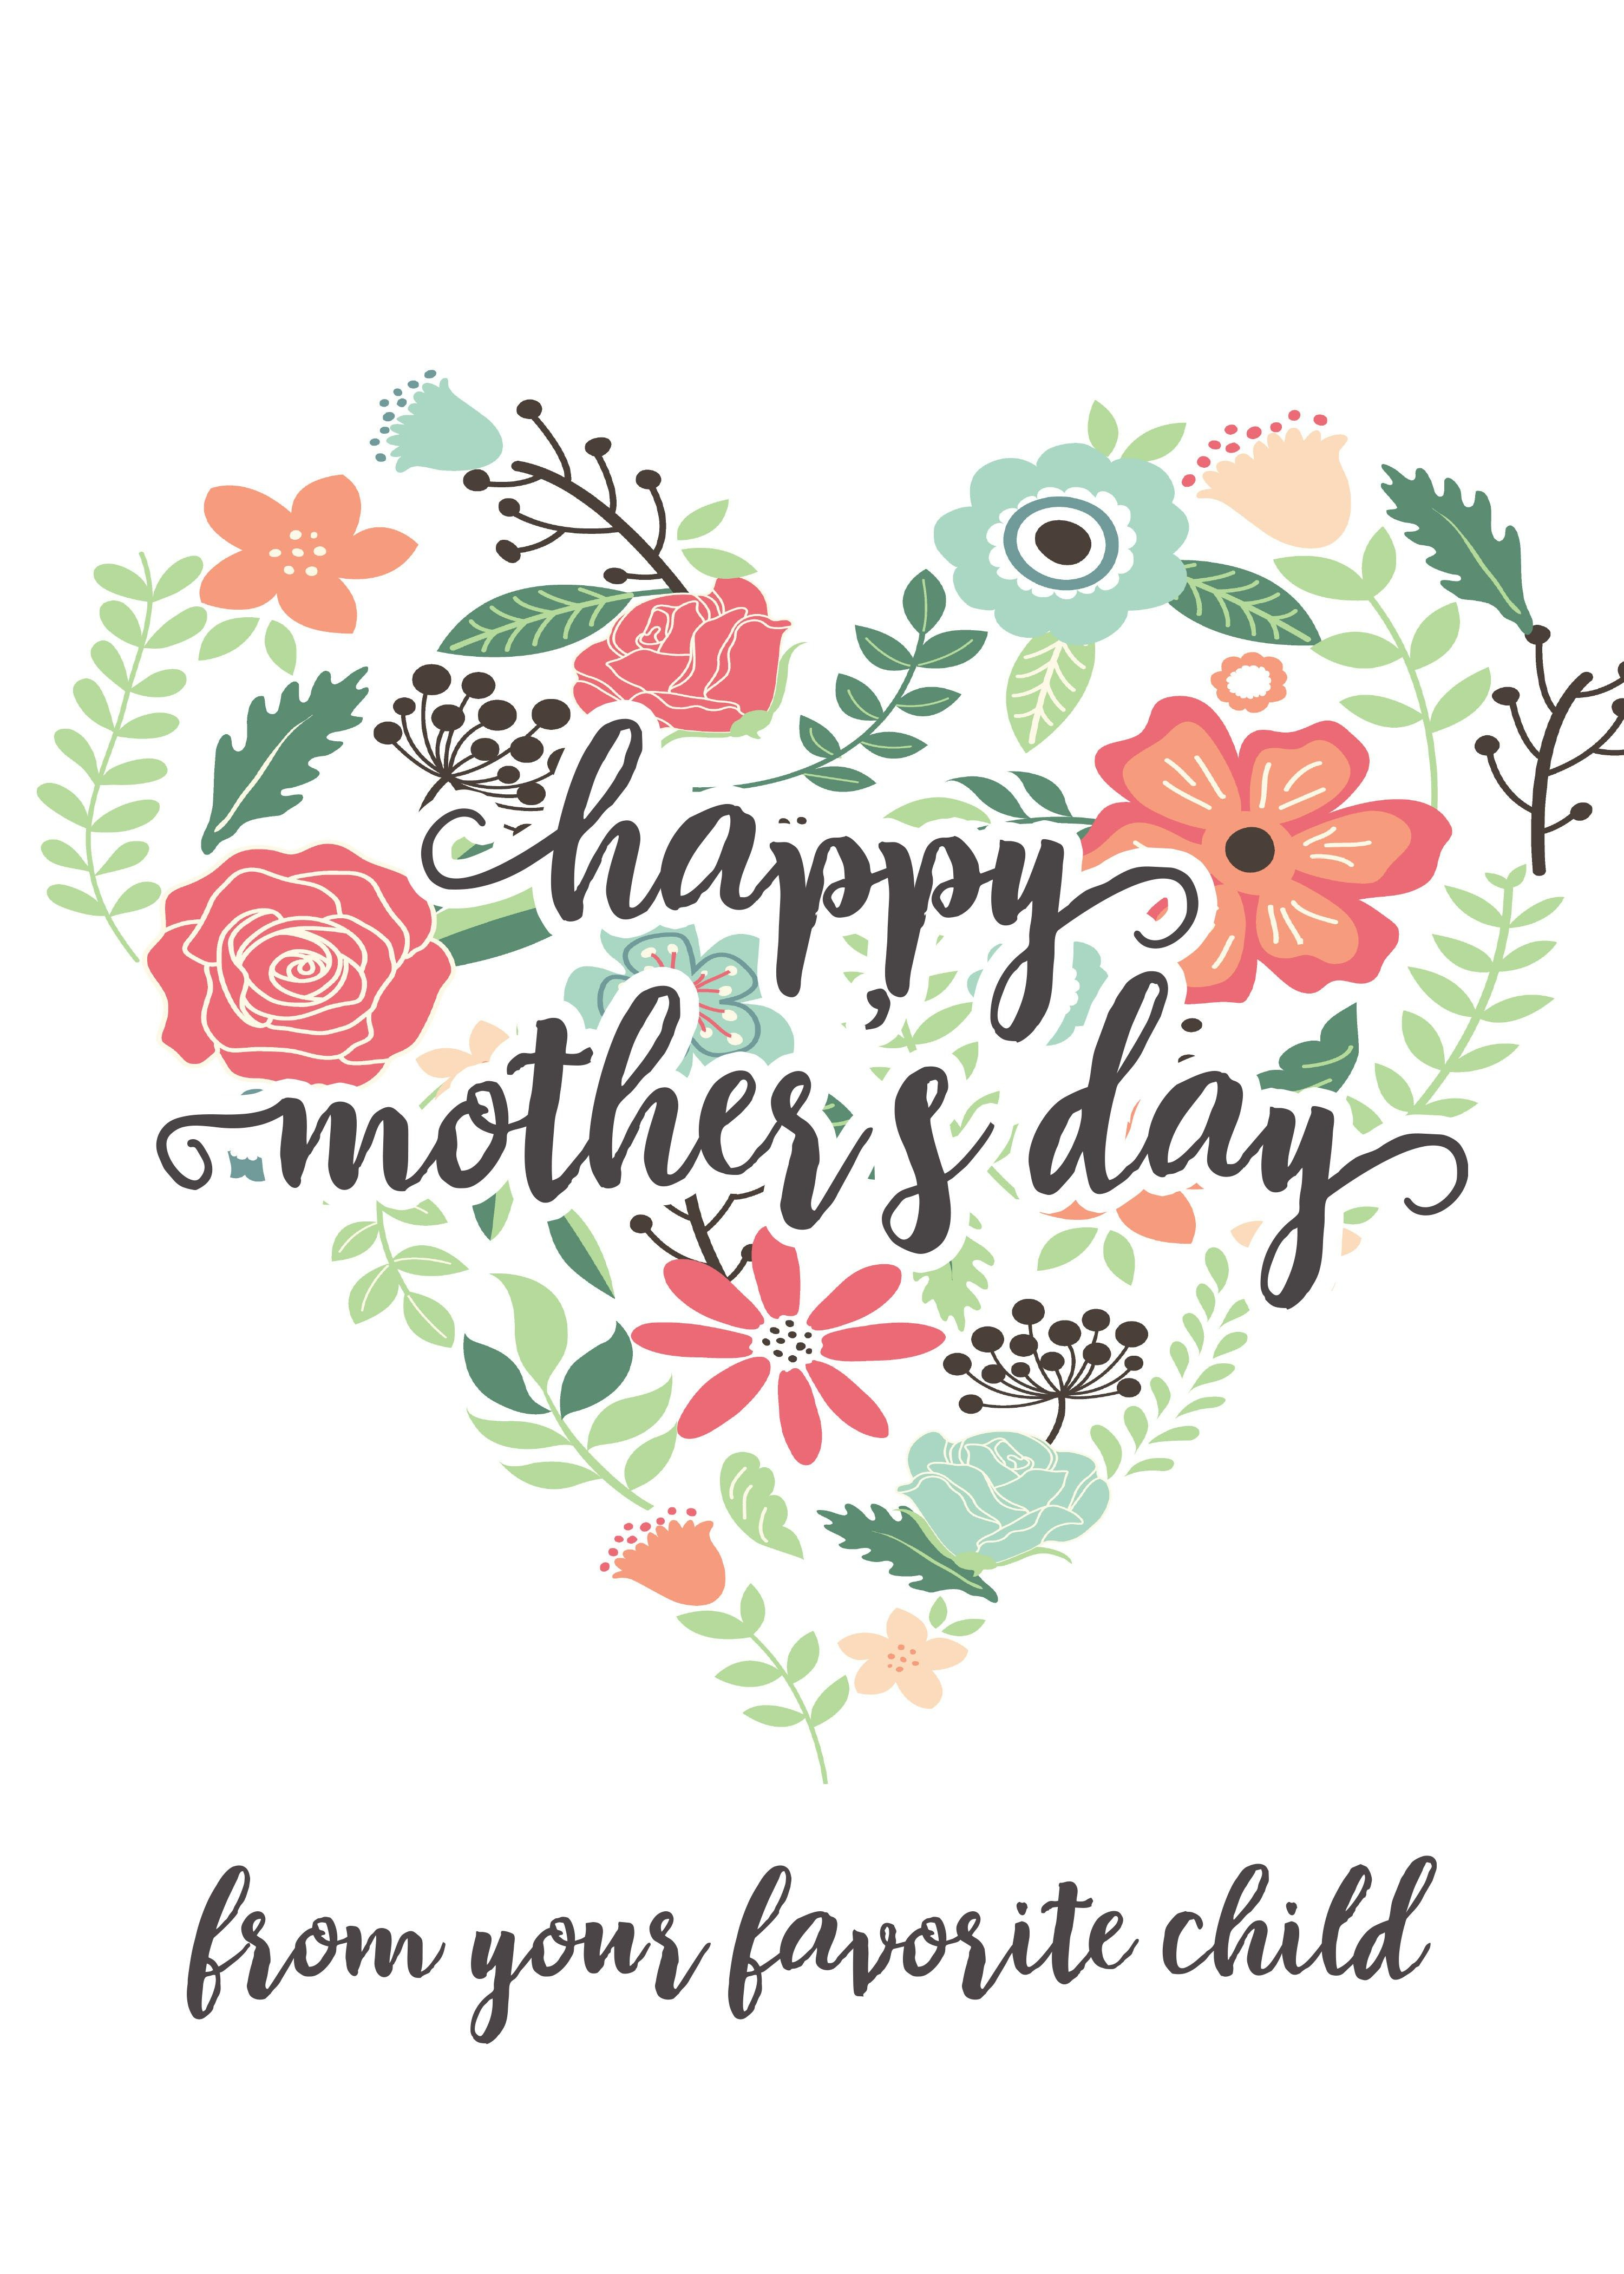 Happy Mothers Day Messages Free Printable Mothers Day Cards - Free Printable Mothers Day Card From Dog